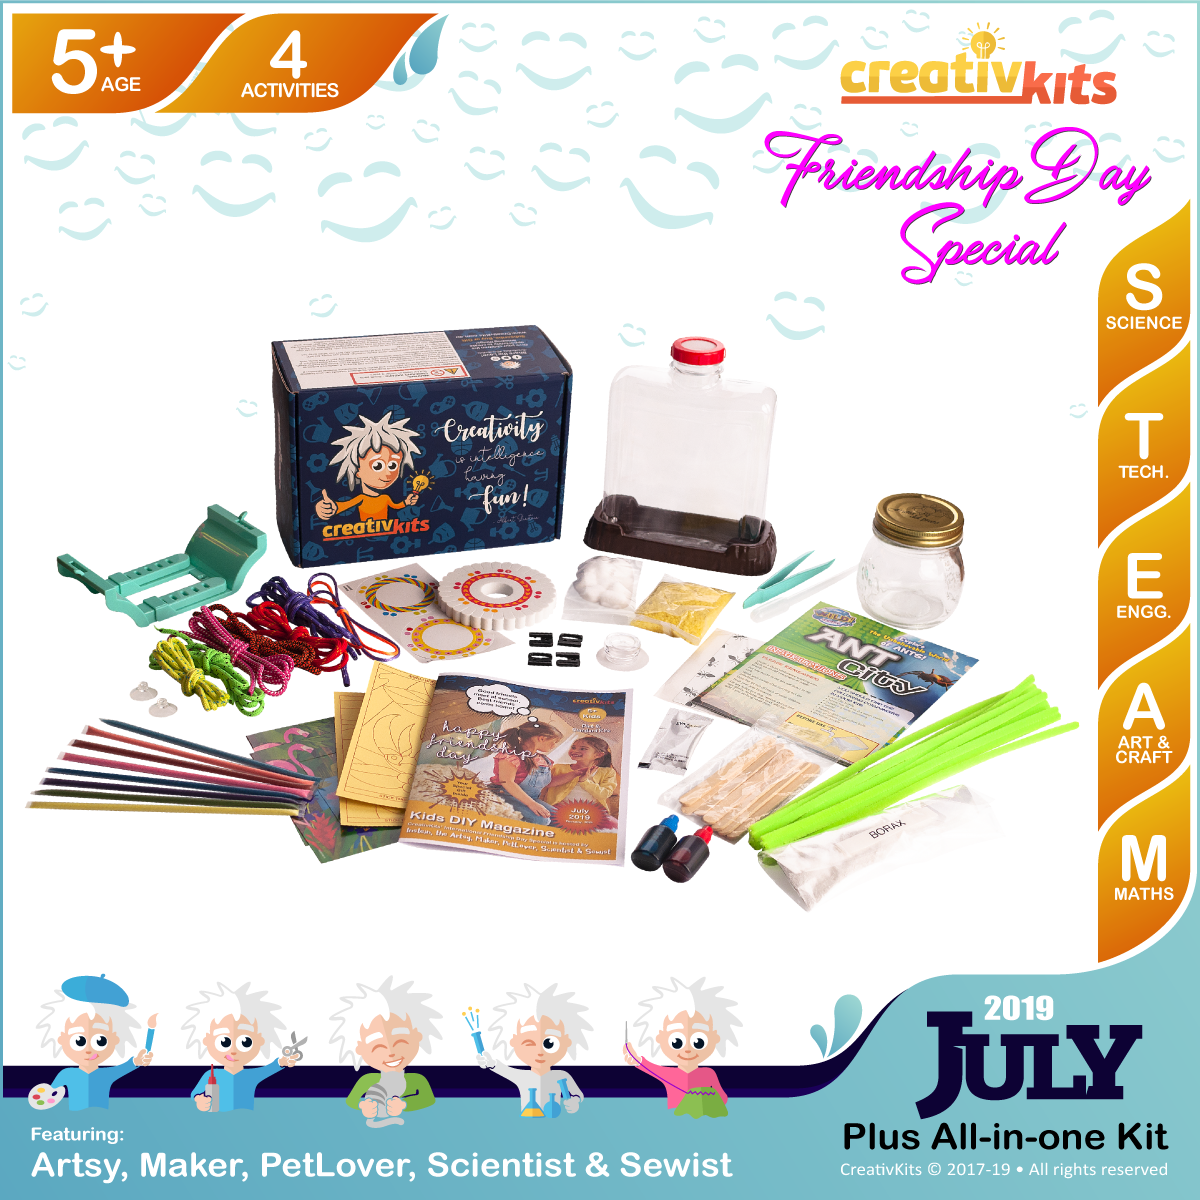 July Plus Kit • Age 5 plus • Build Ant City, MYO Friendship Bands, Crystal Snowflakes and Sand Art